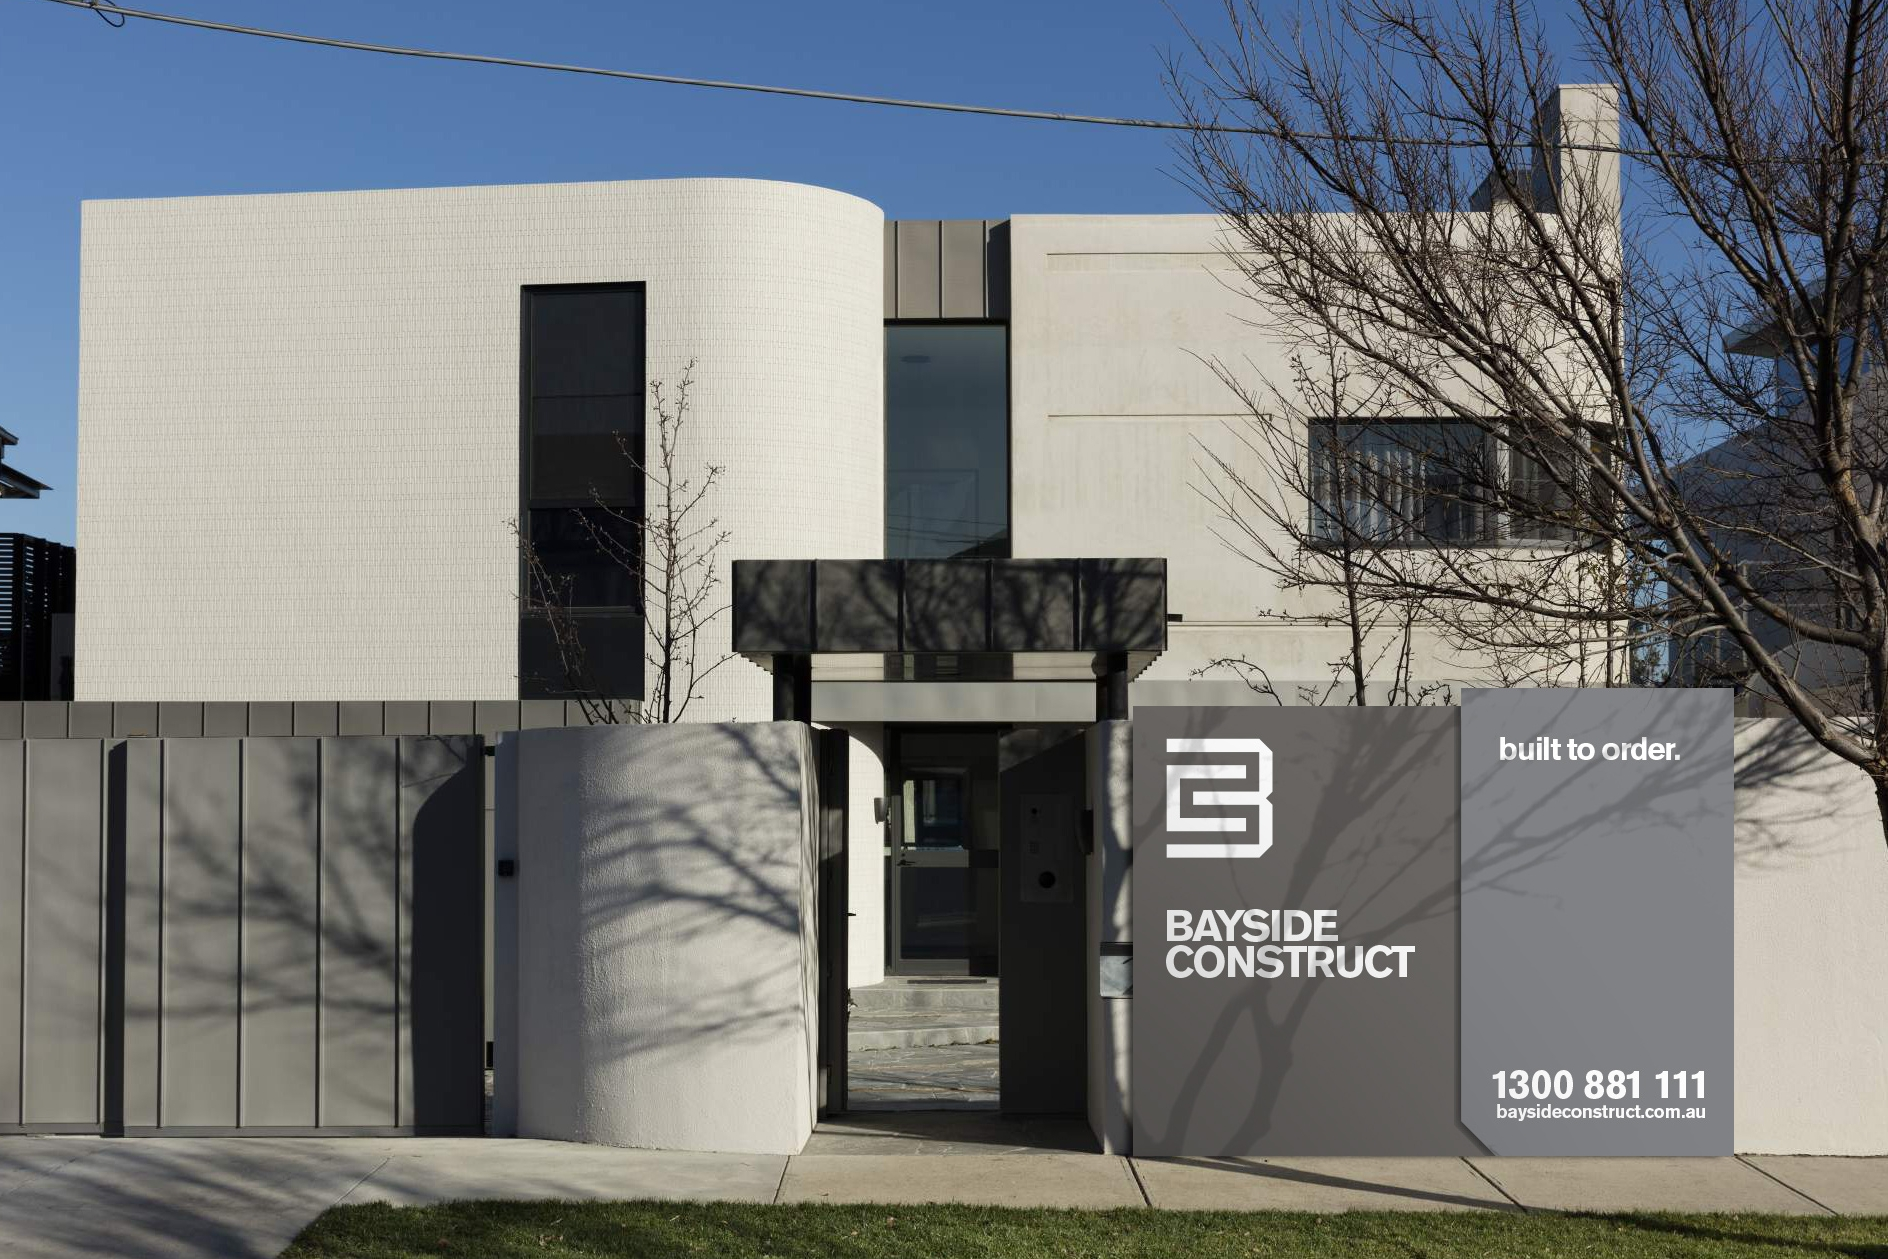 Bayside Construct - Branding, Collateral, Environment